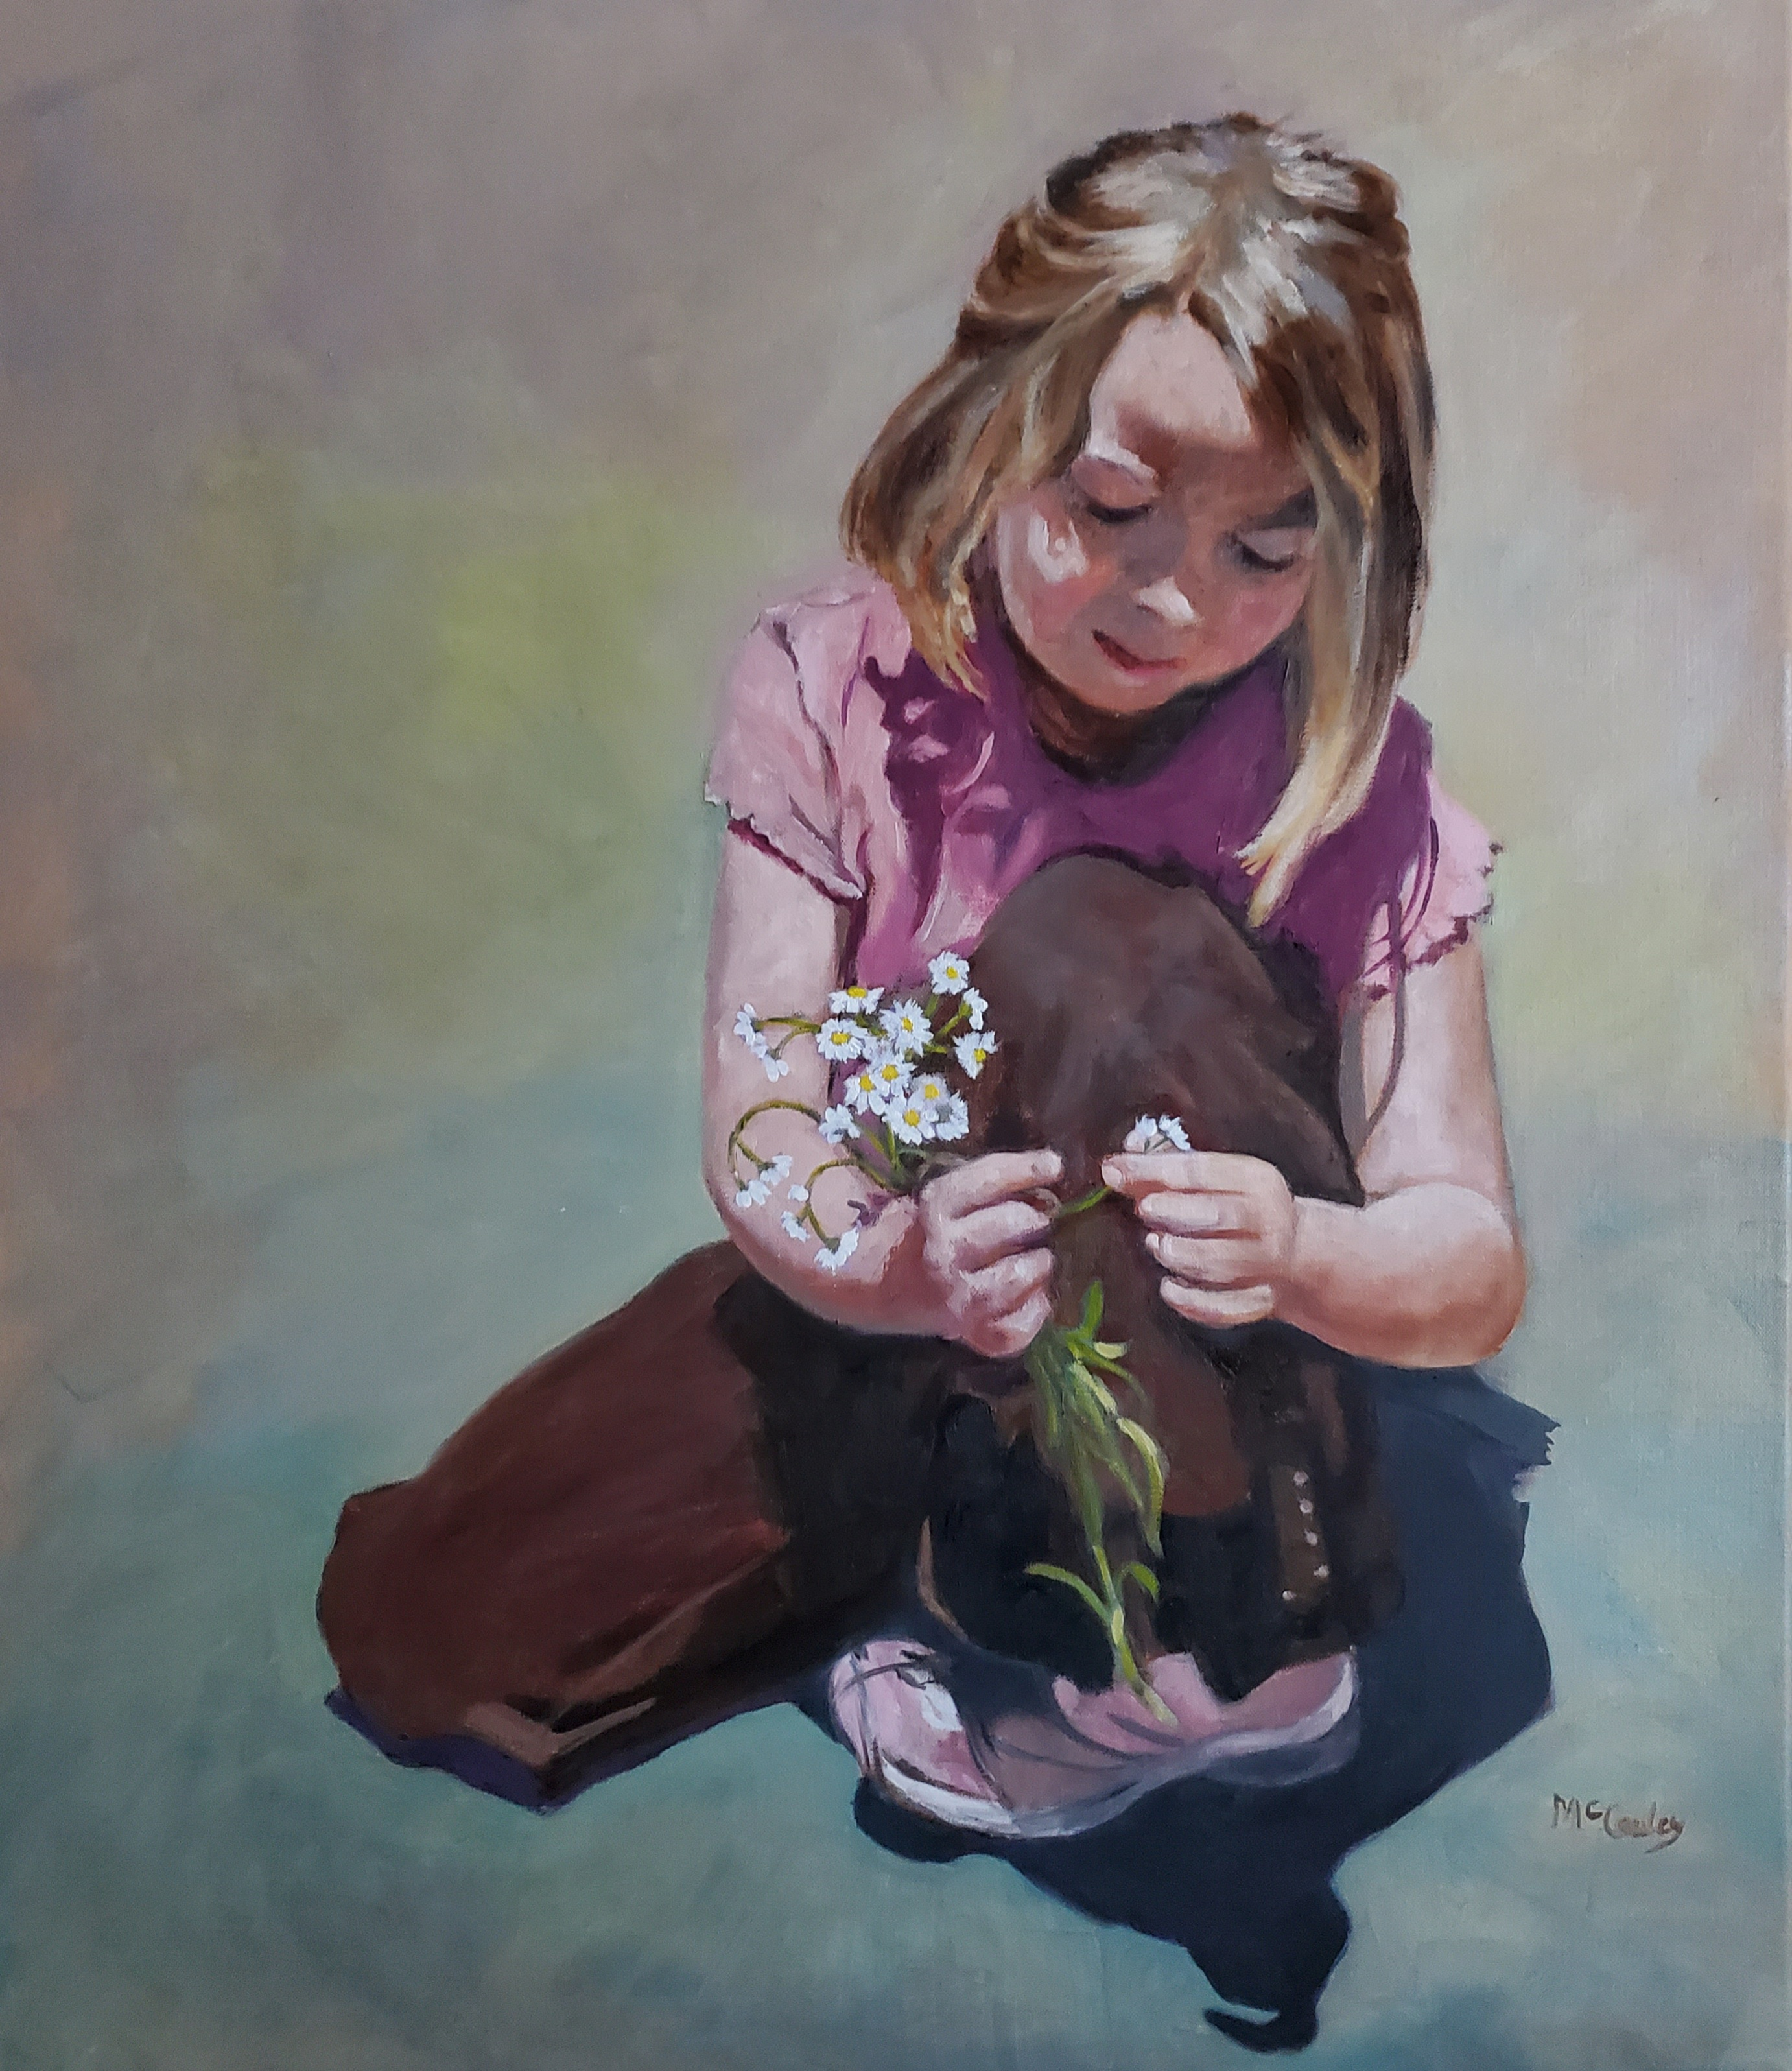 'Tiny Bouquet', oil on linen by Alison McCauley ($600)